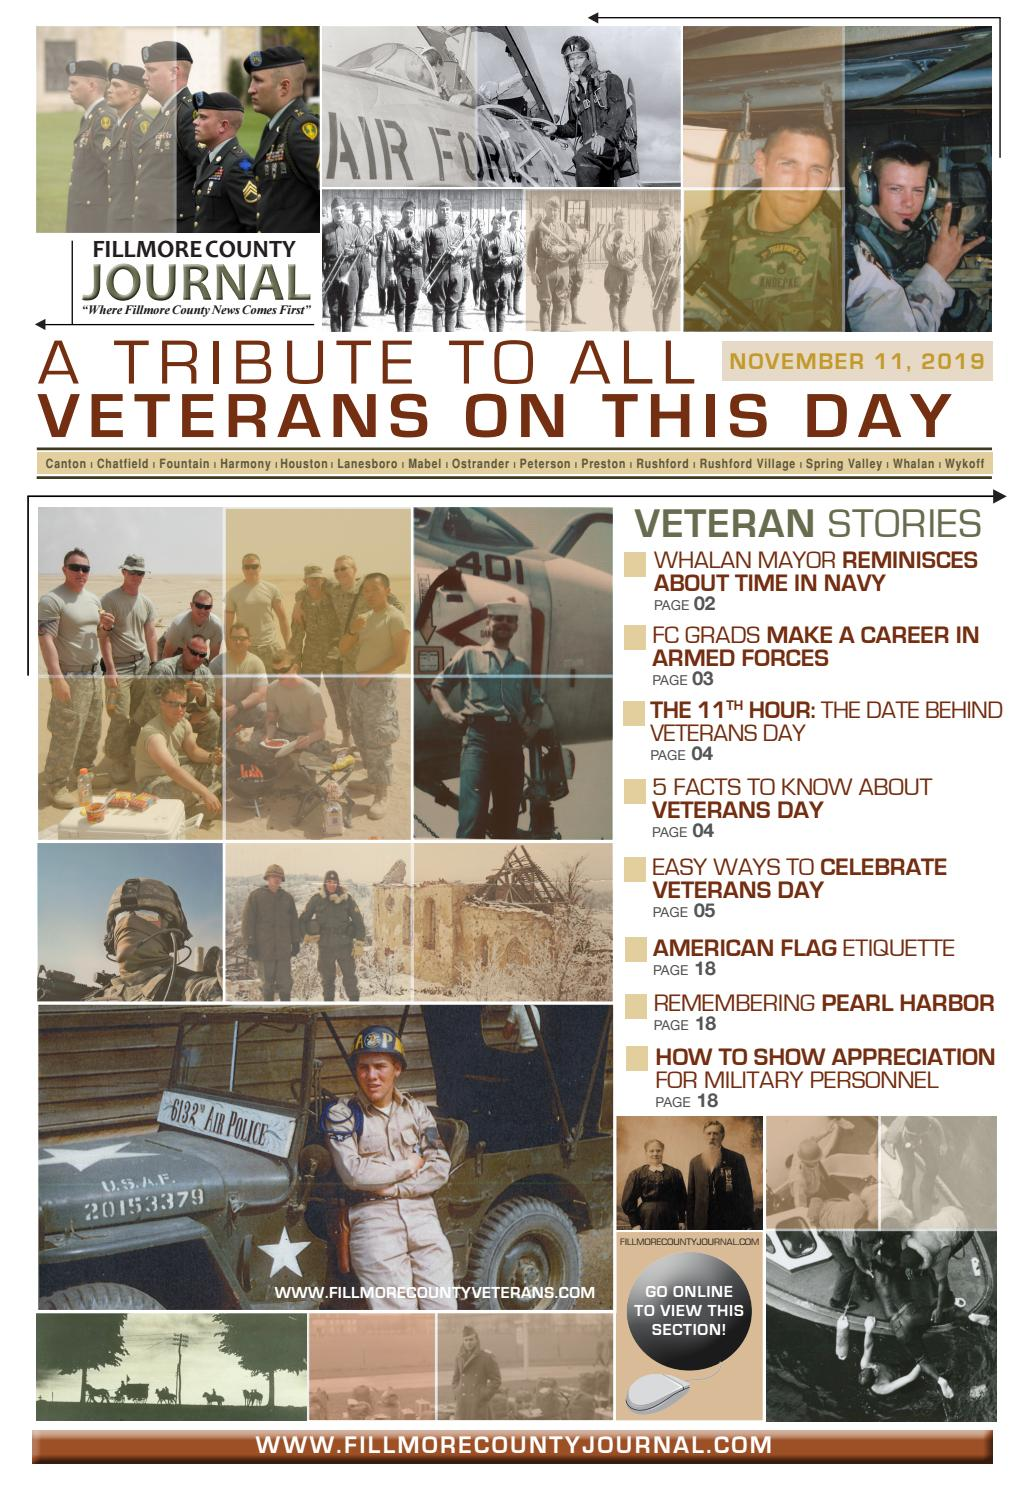 Fillmore County Journal Veterans Day Section 11419 By